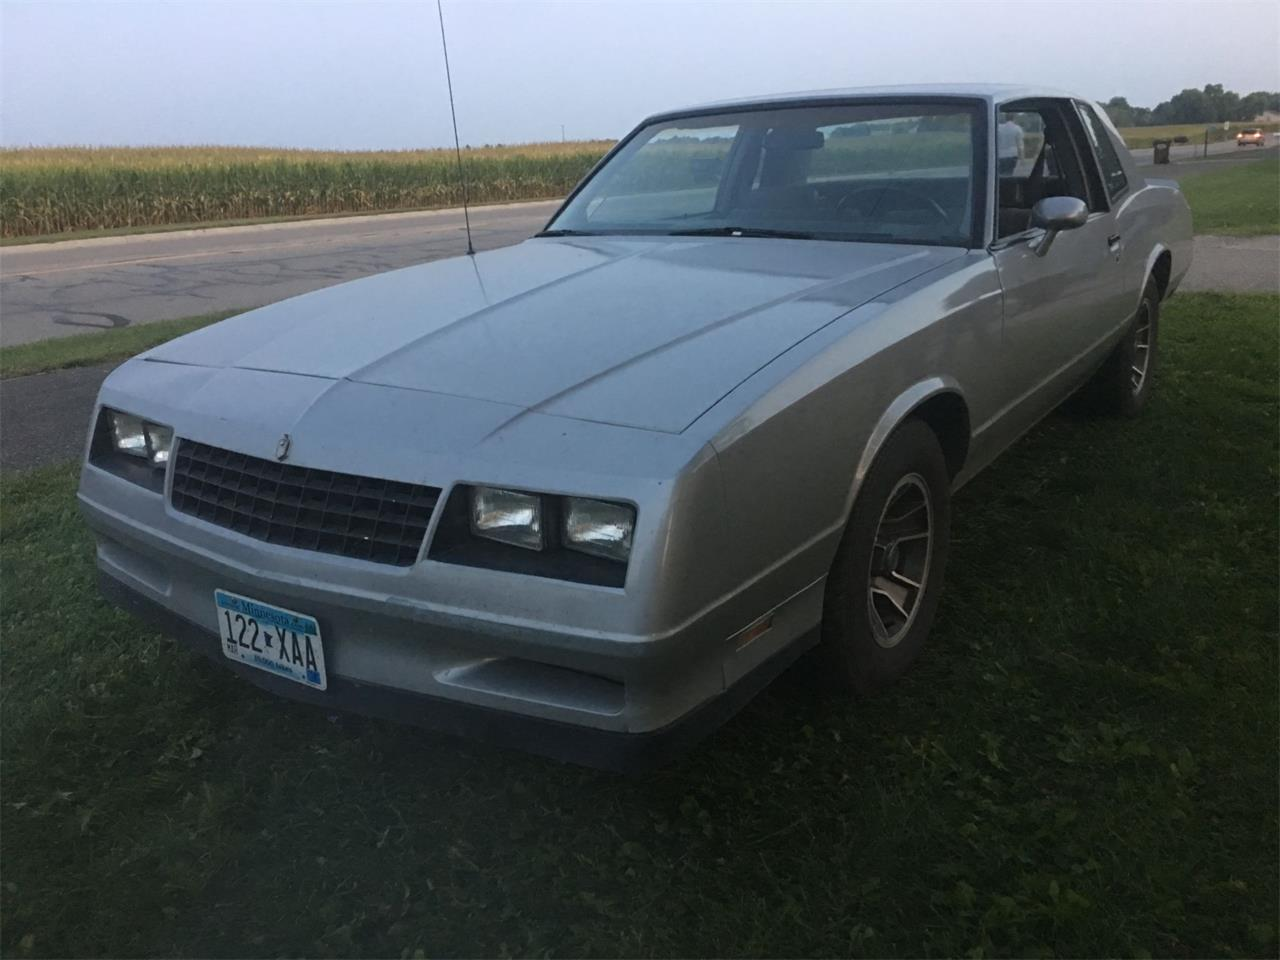 For Sale: 1985 Chevrolet Monte Carlo in Annandale, Minnesota